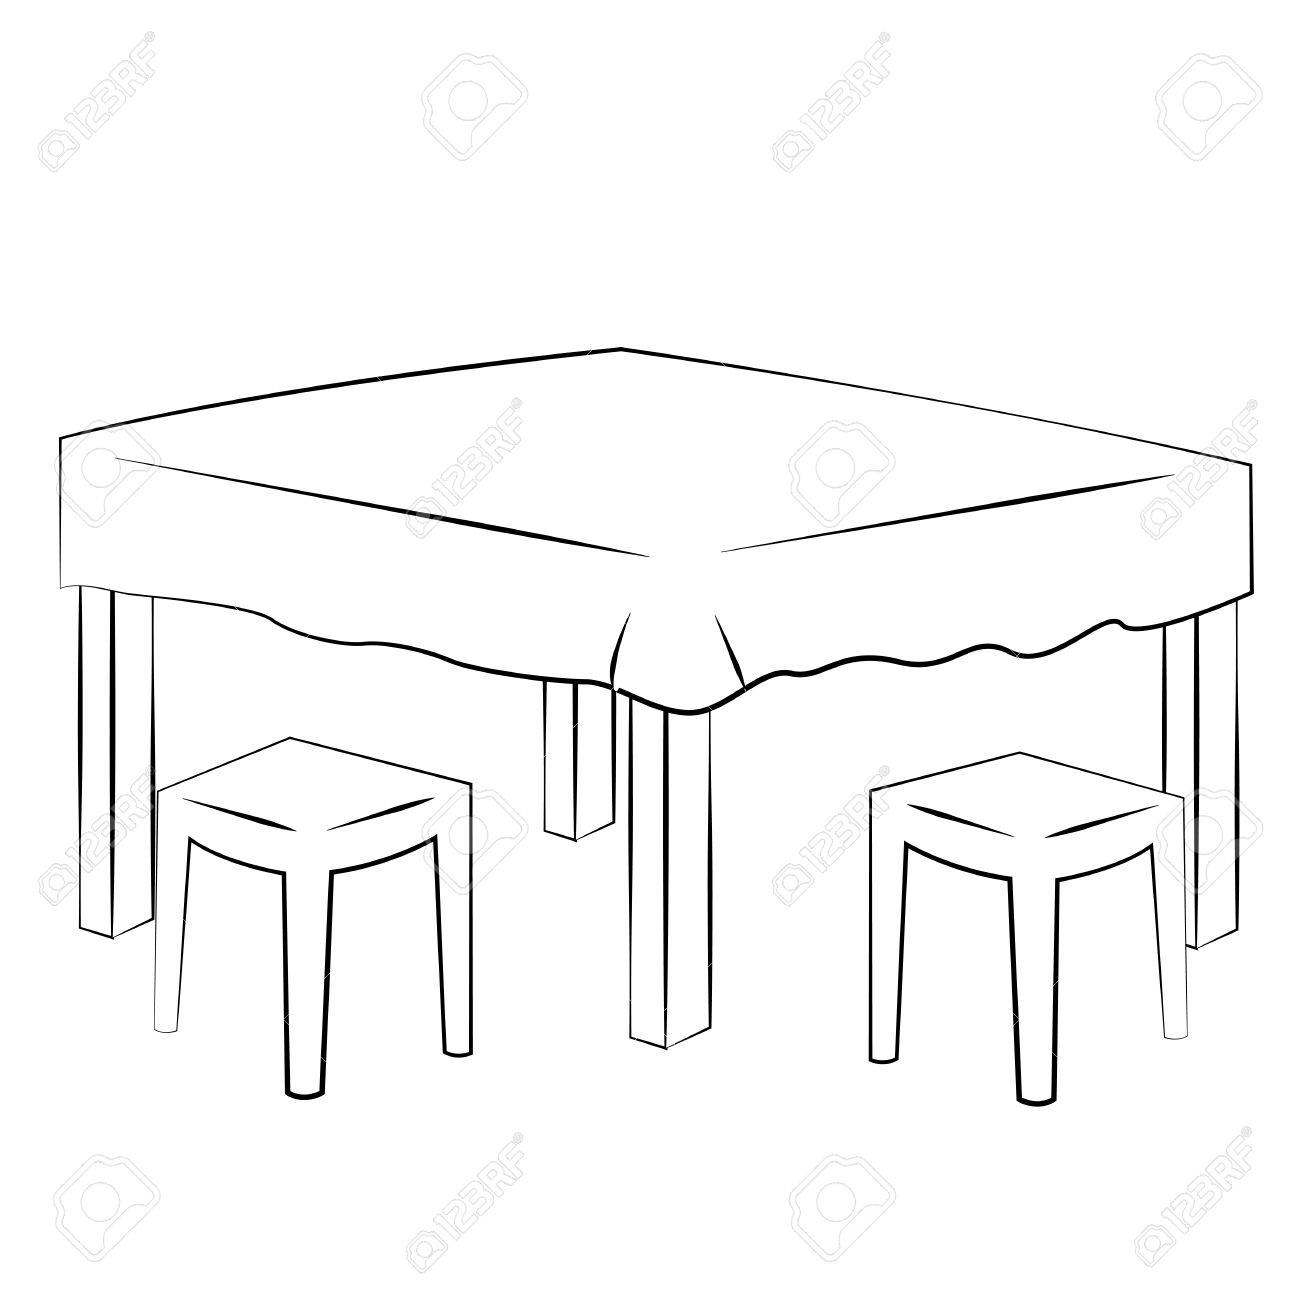 dinner table clipart black and white. black outline vector dining table on white background. stock - 35620637 dinner clipart and i